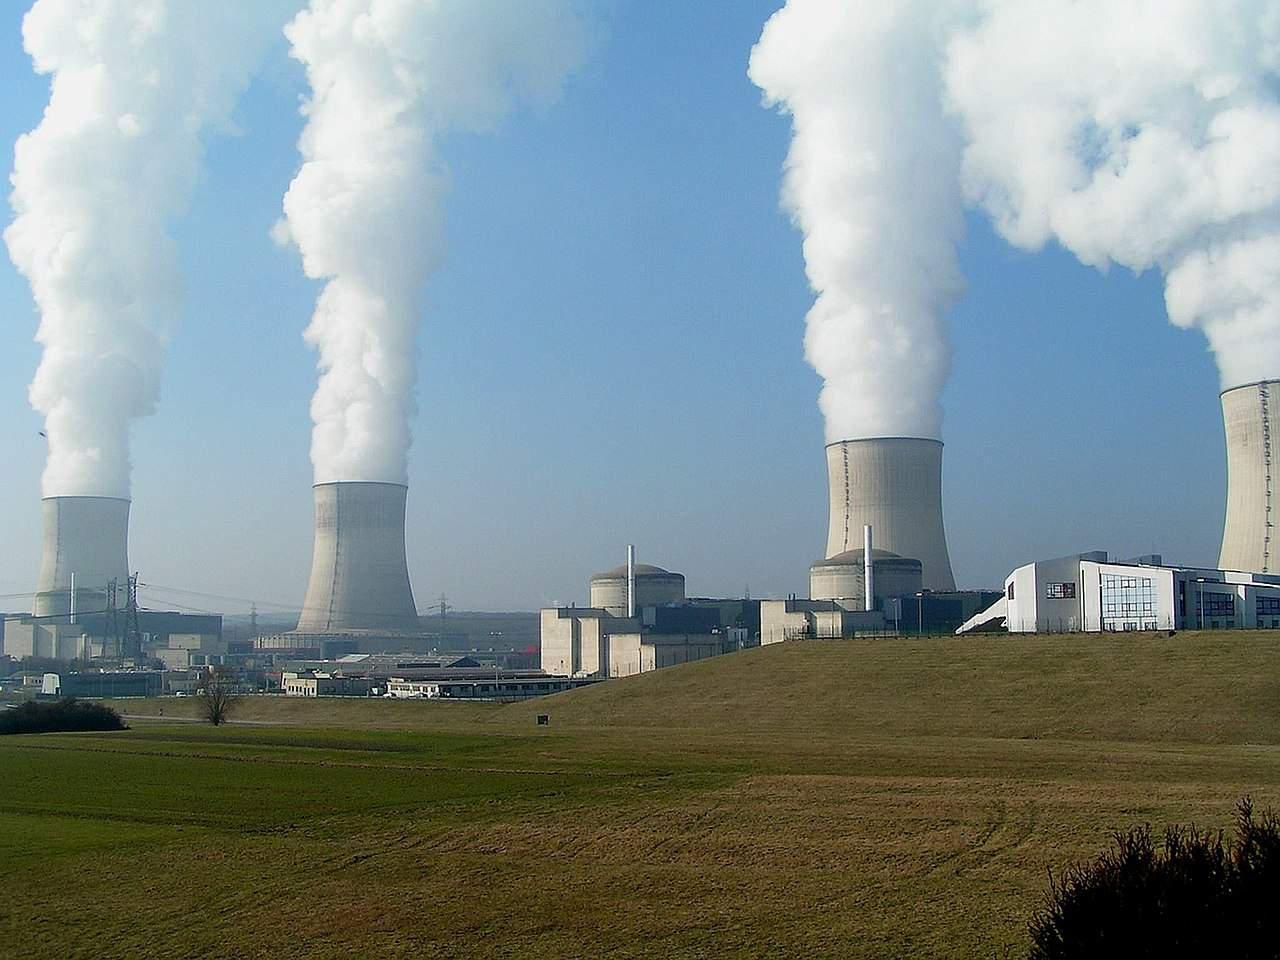 Nuclear Power Plant Cattenom, France via Stefan Kuhn on Wikimedia